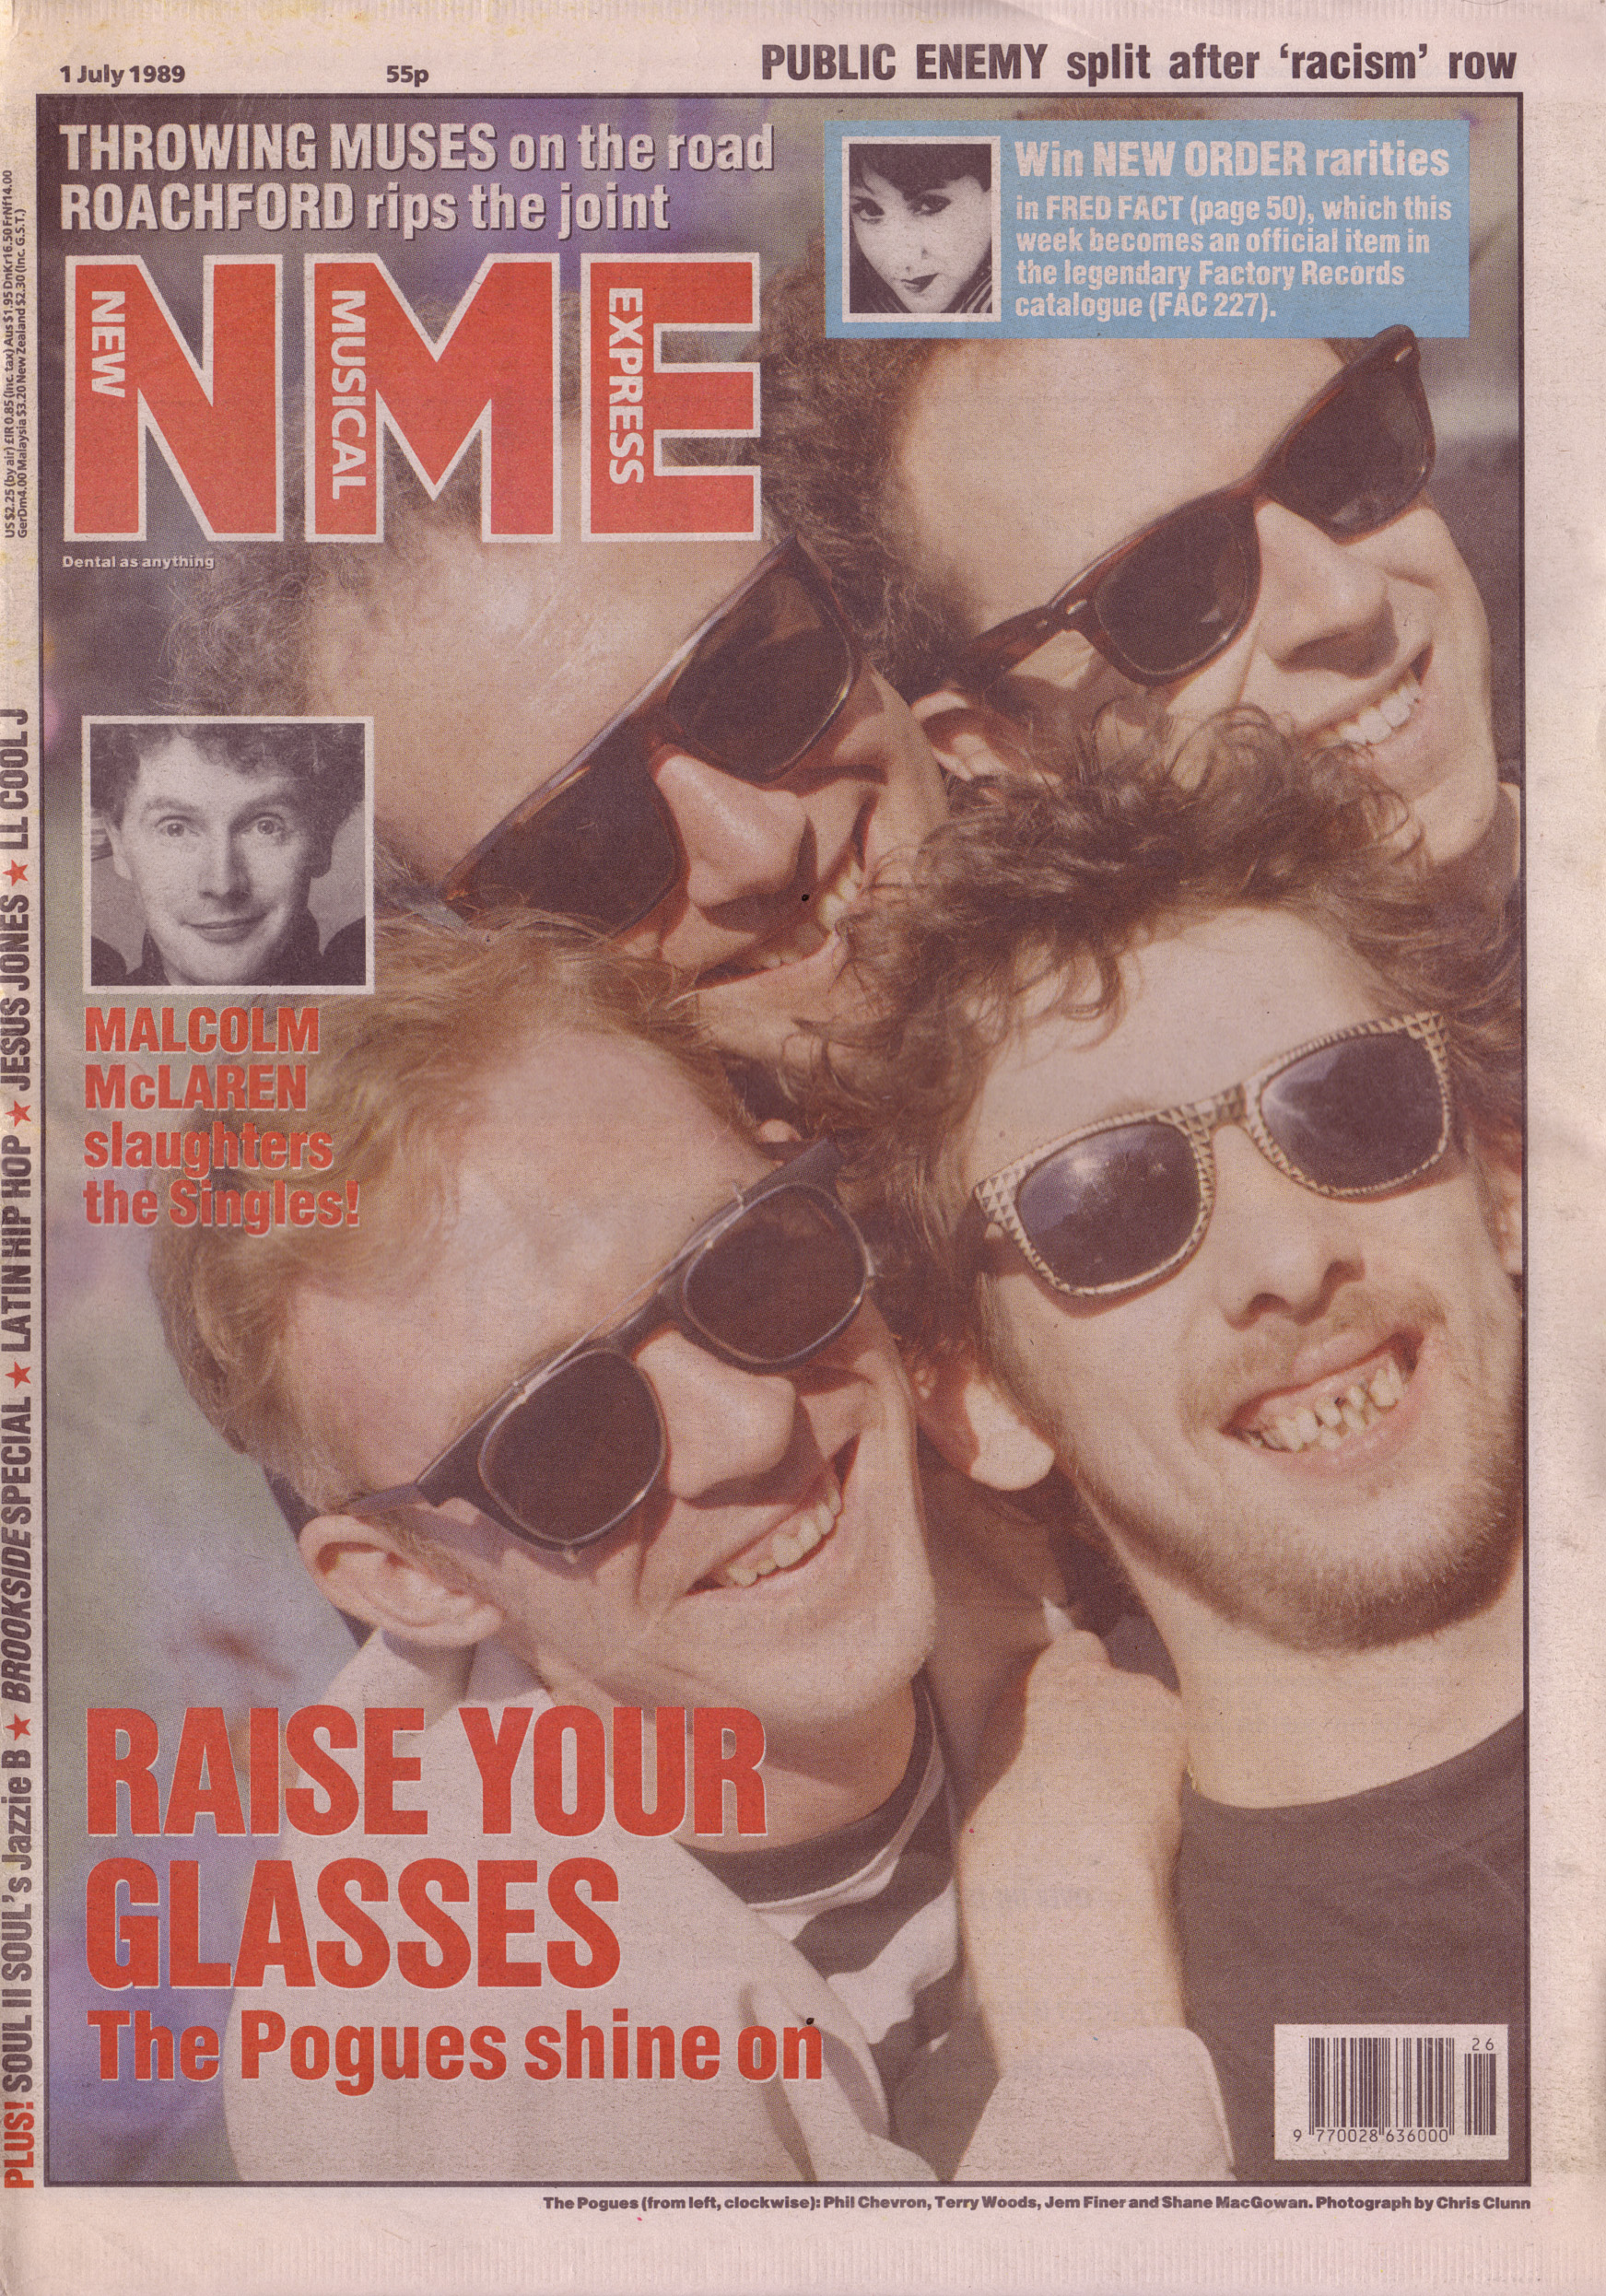 of NME, 1st July 1989.